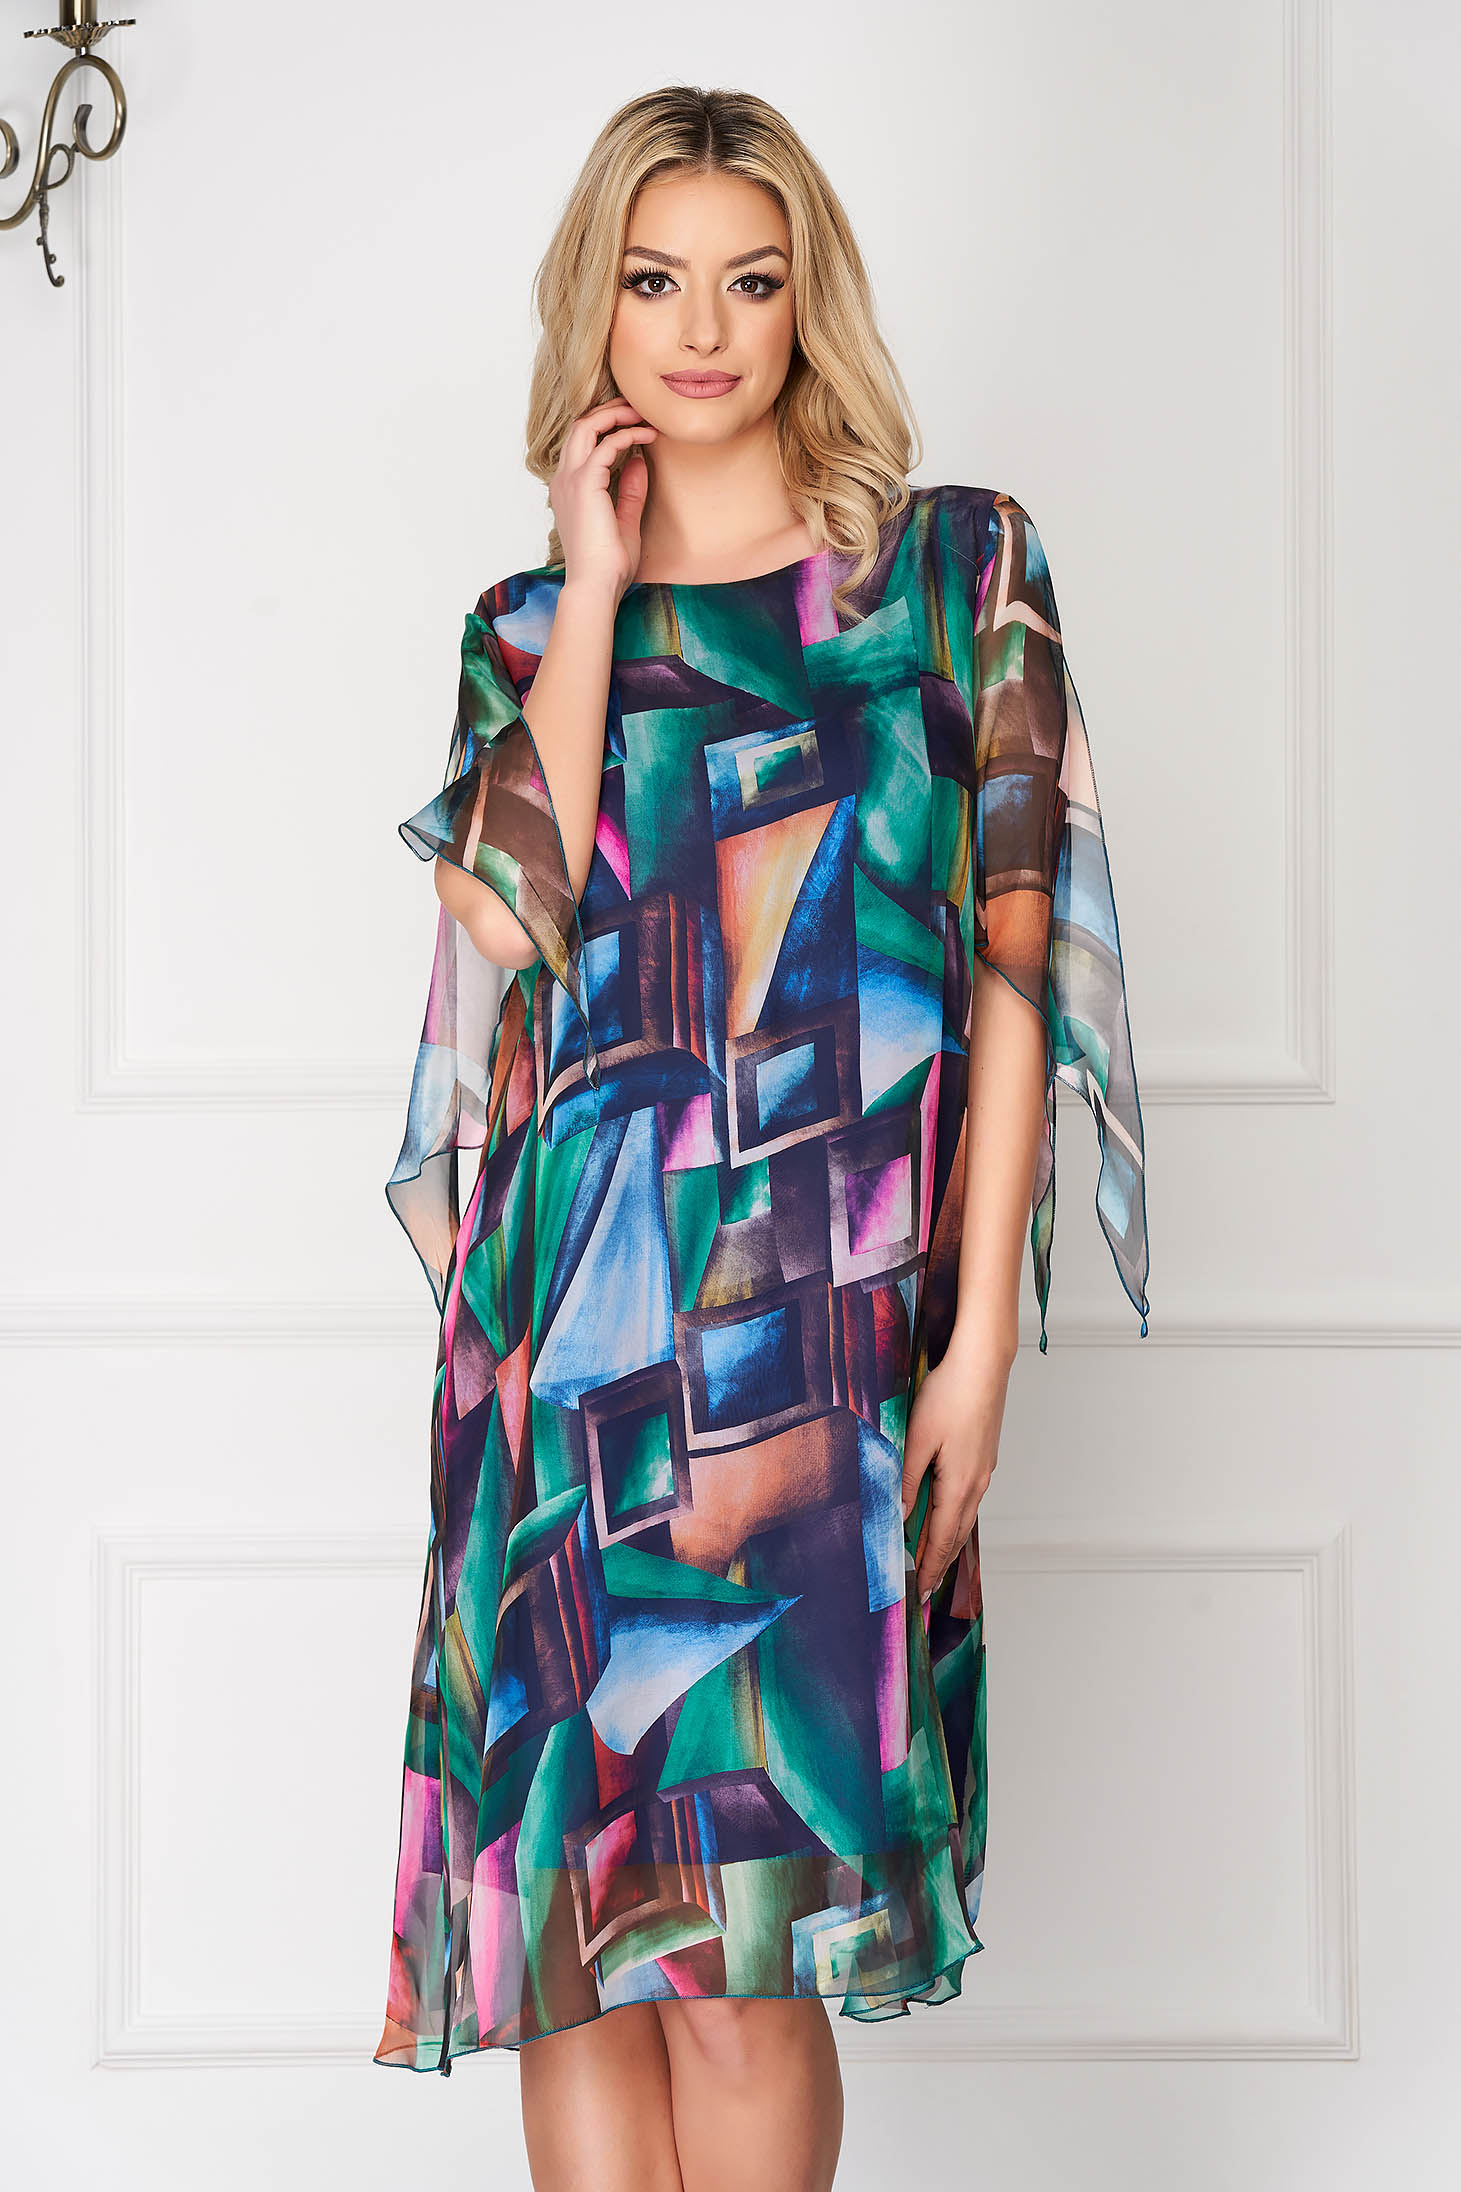 Green asymmetrical office dress straight with floral prints with veil sleeves voile overlay